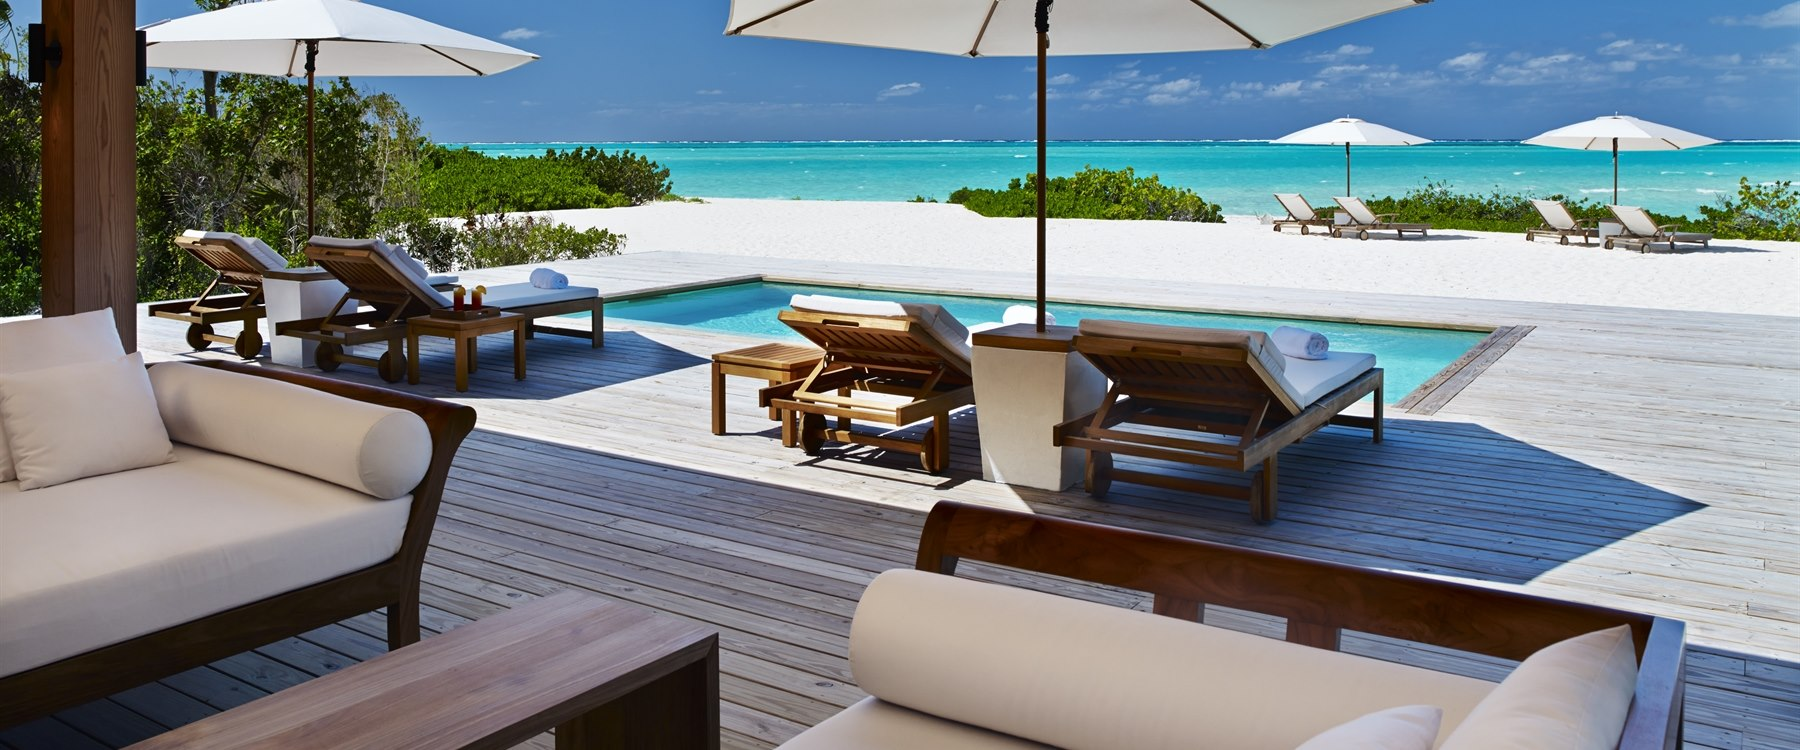 Two bedroom beach house pool deck at COMO Parrot Cay, Turks and Caicos